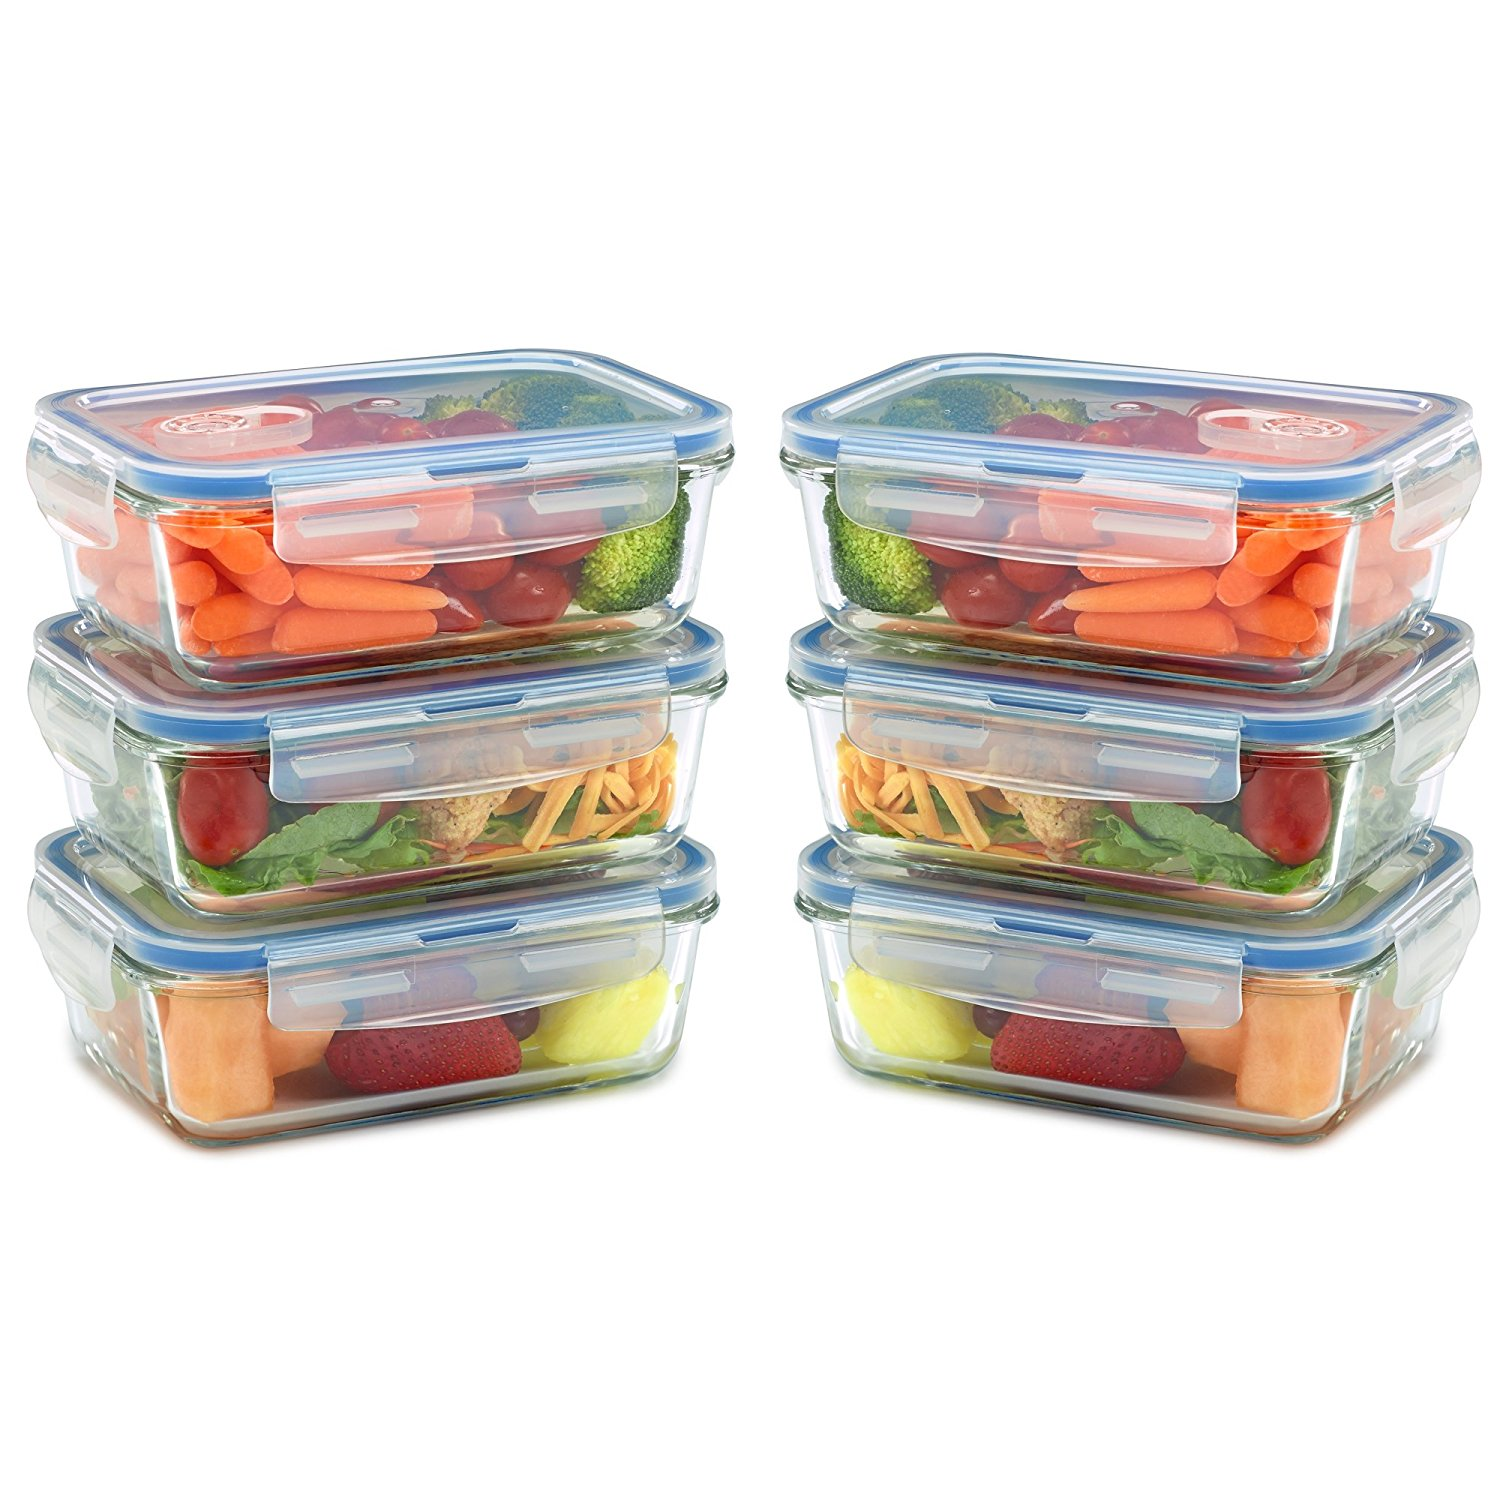 6 Pack - Glass Meal Prep Containers for Food Storage w/ Snap Locking Lids Airtight & Leak Proof - BPA Free - Oven, Dishwasher, Microwave, Freezer Safe - Odor and Stain Resistant USDA Food Grade Glass